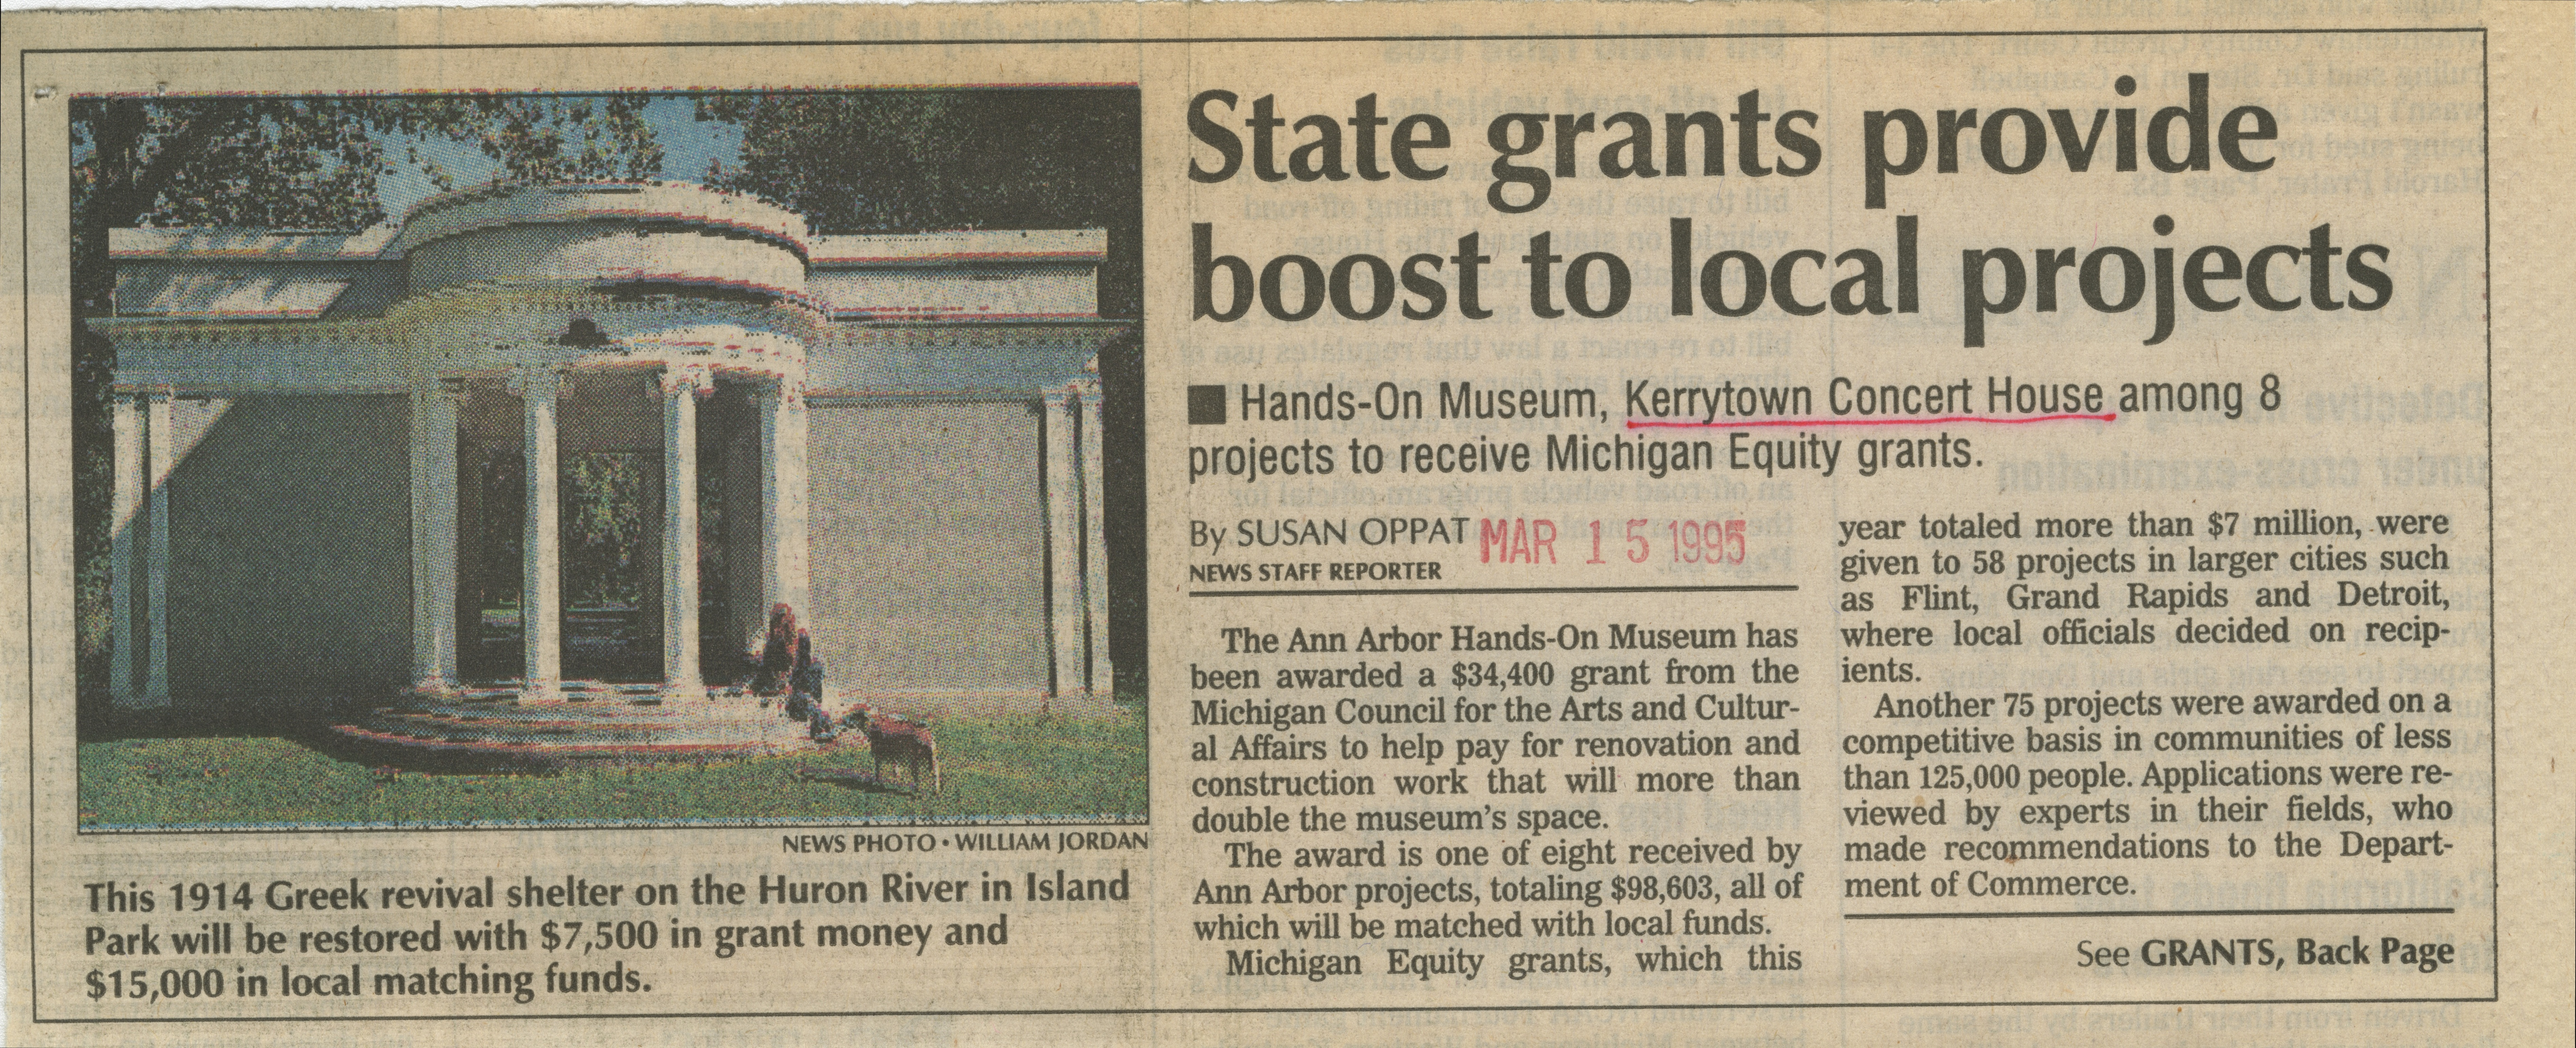 State grants provide boost to local projects image